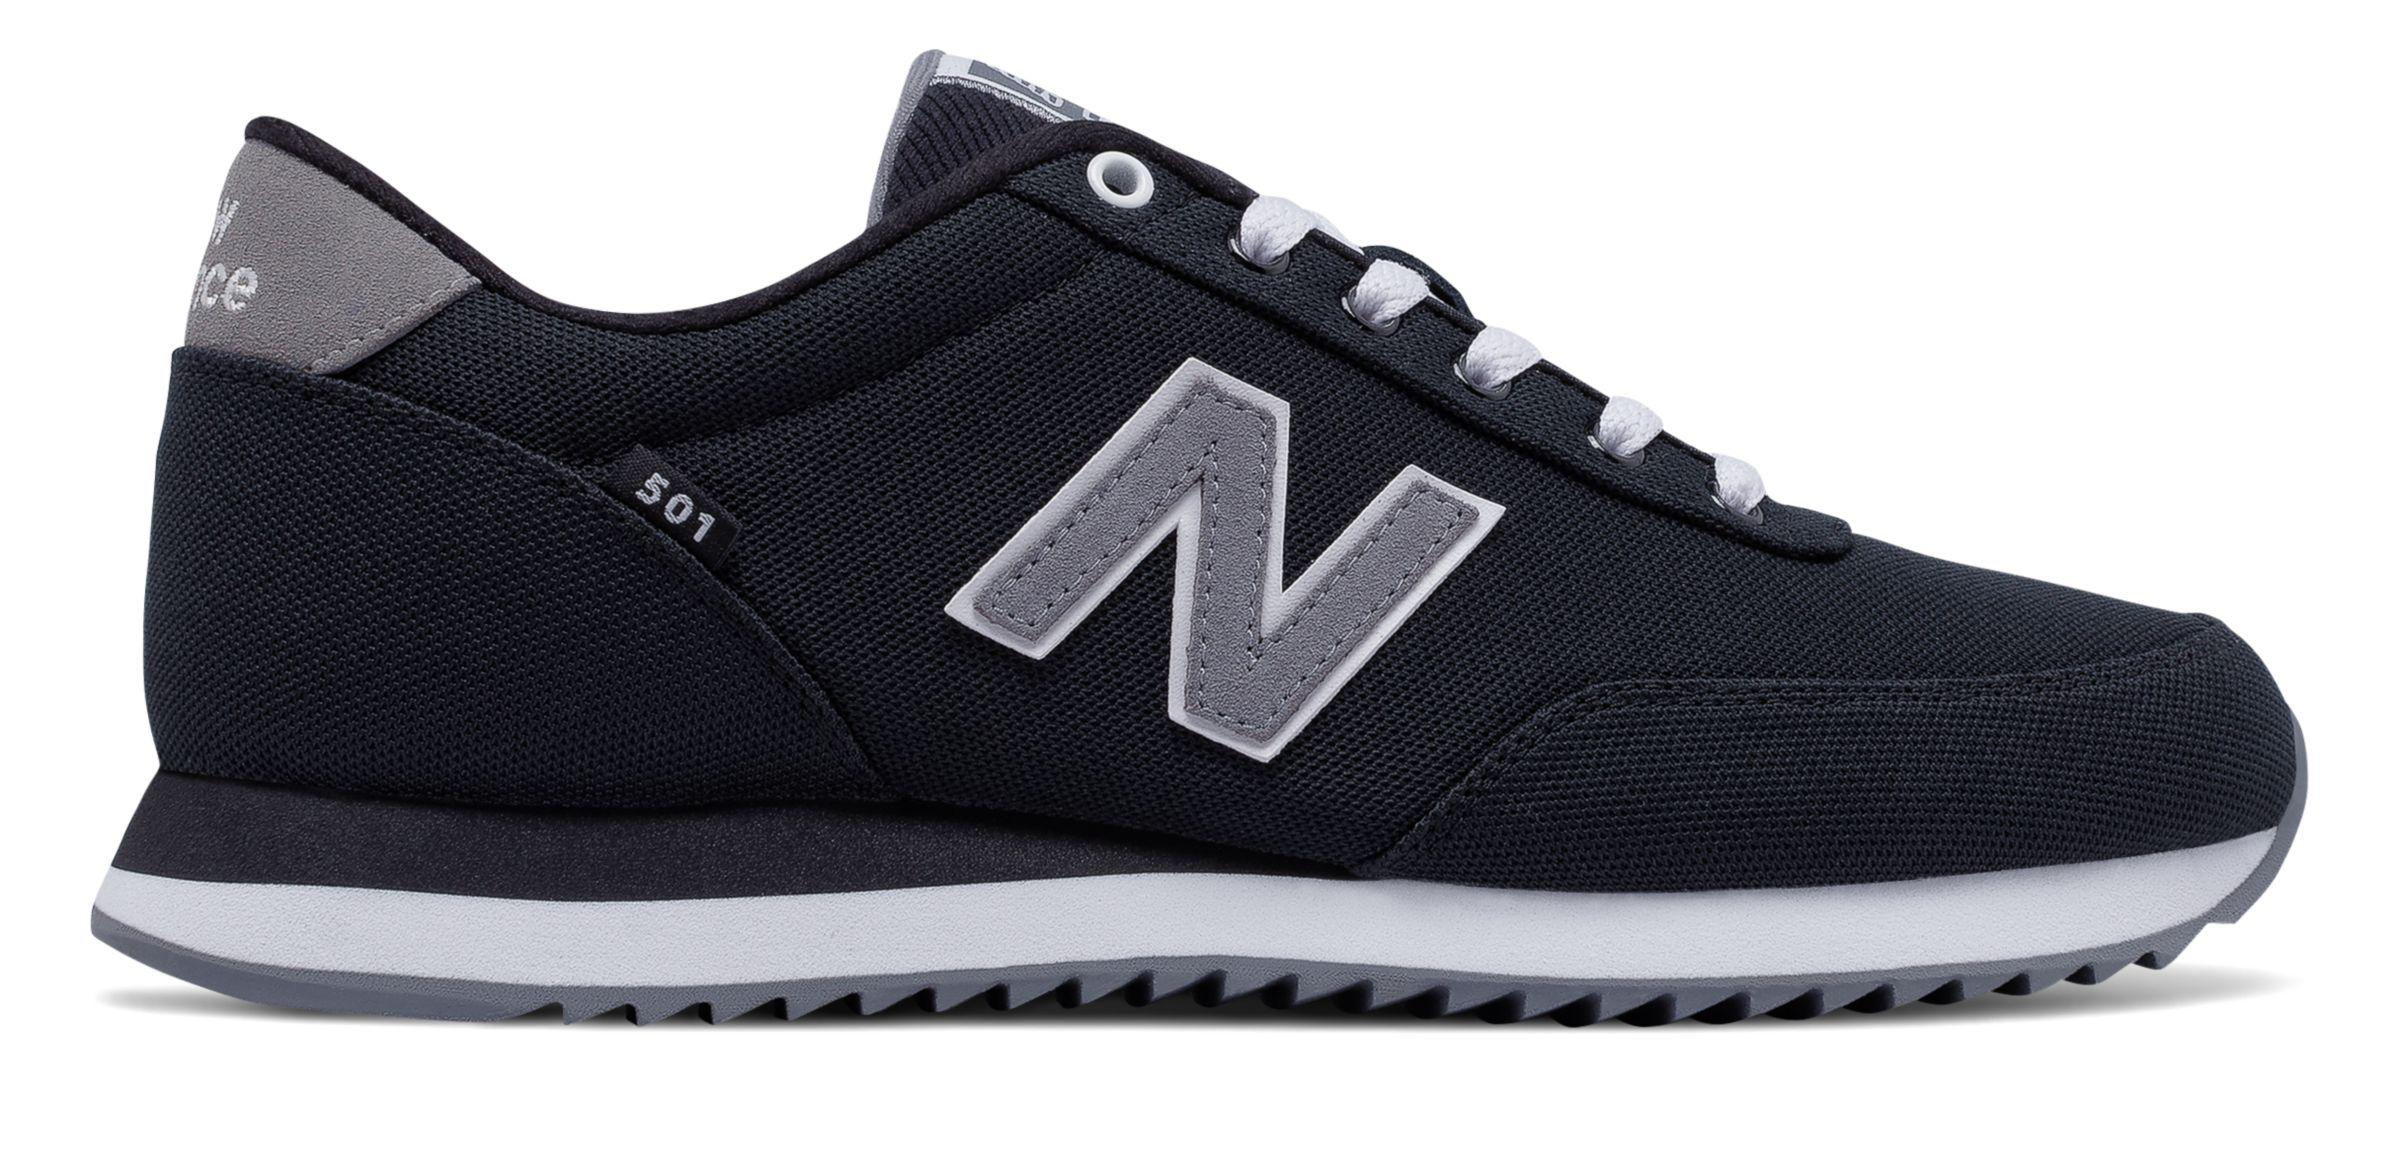 New Balance Rubber 501 Ripple Sole in Black for Men - Lyst